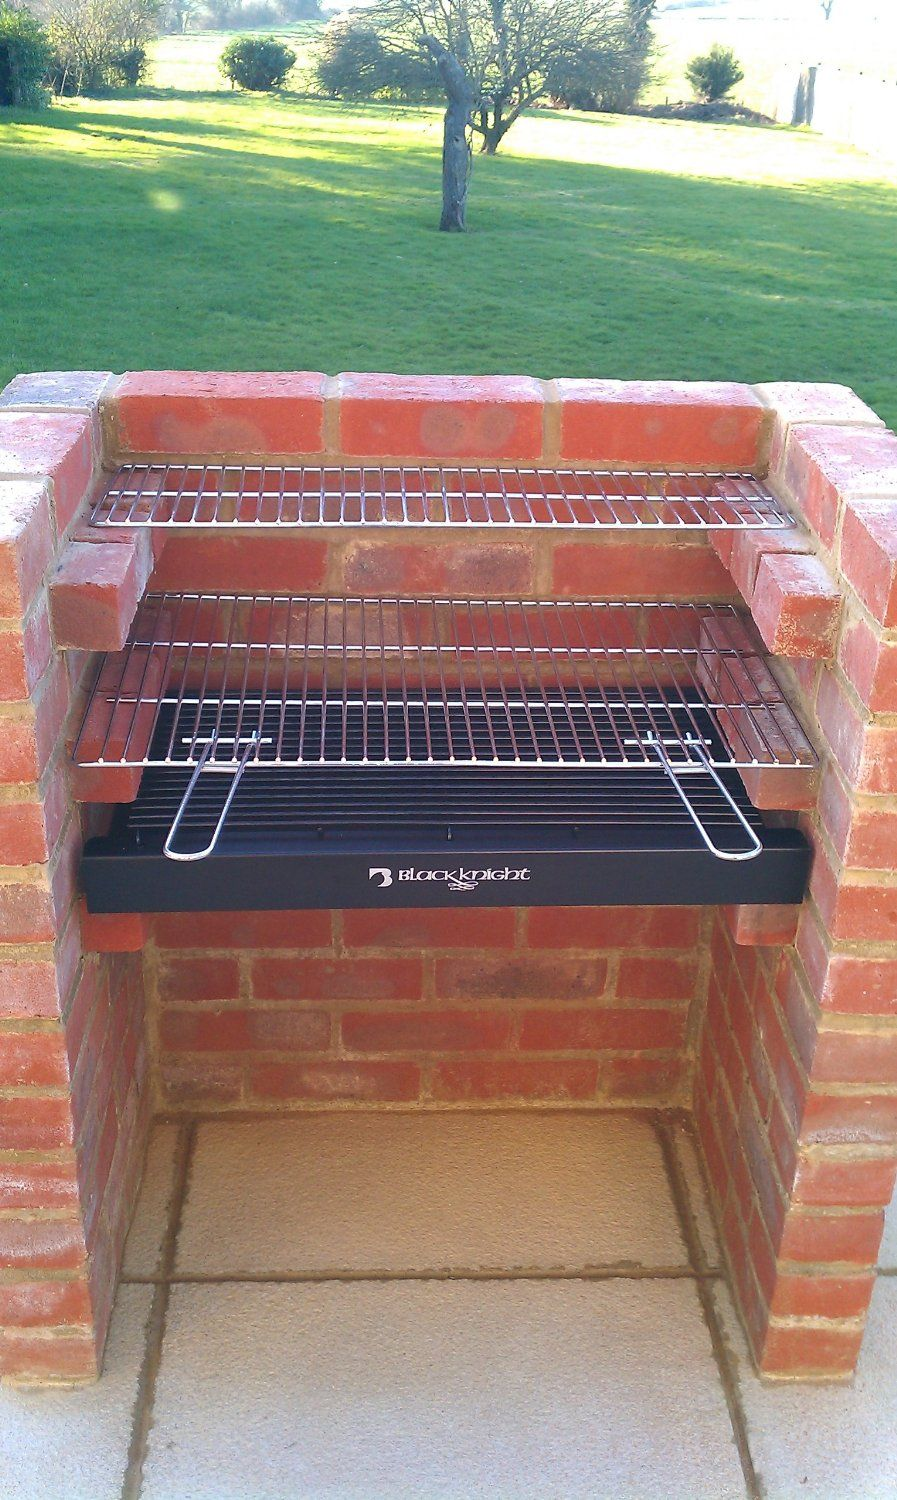 Black knight barbecue bkb stainless steel grill bbq kit warming